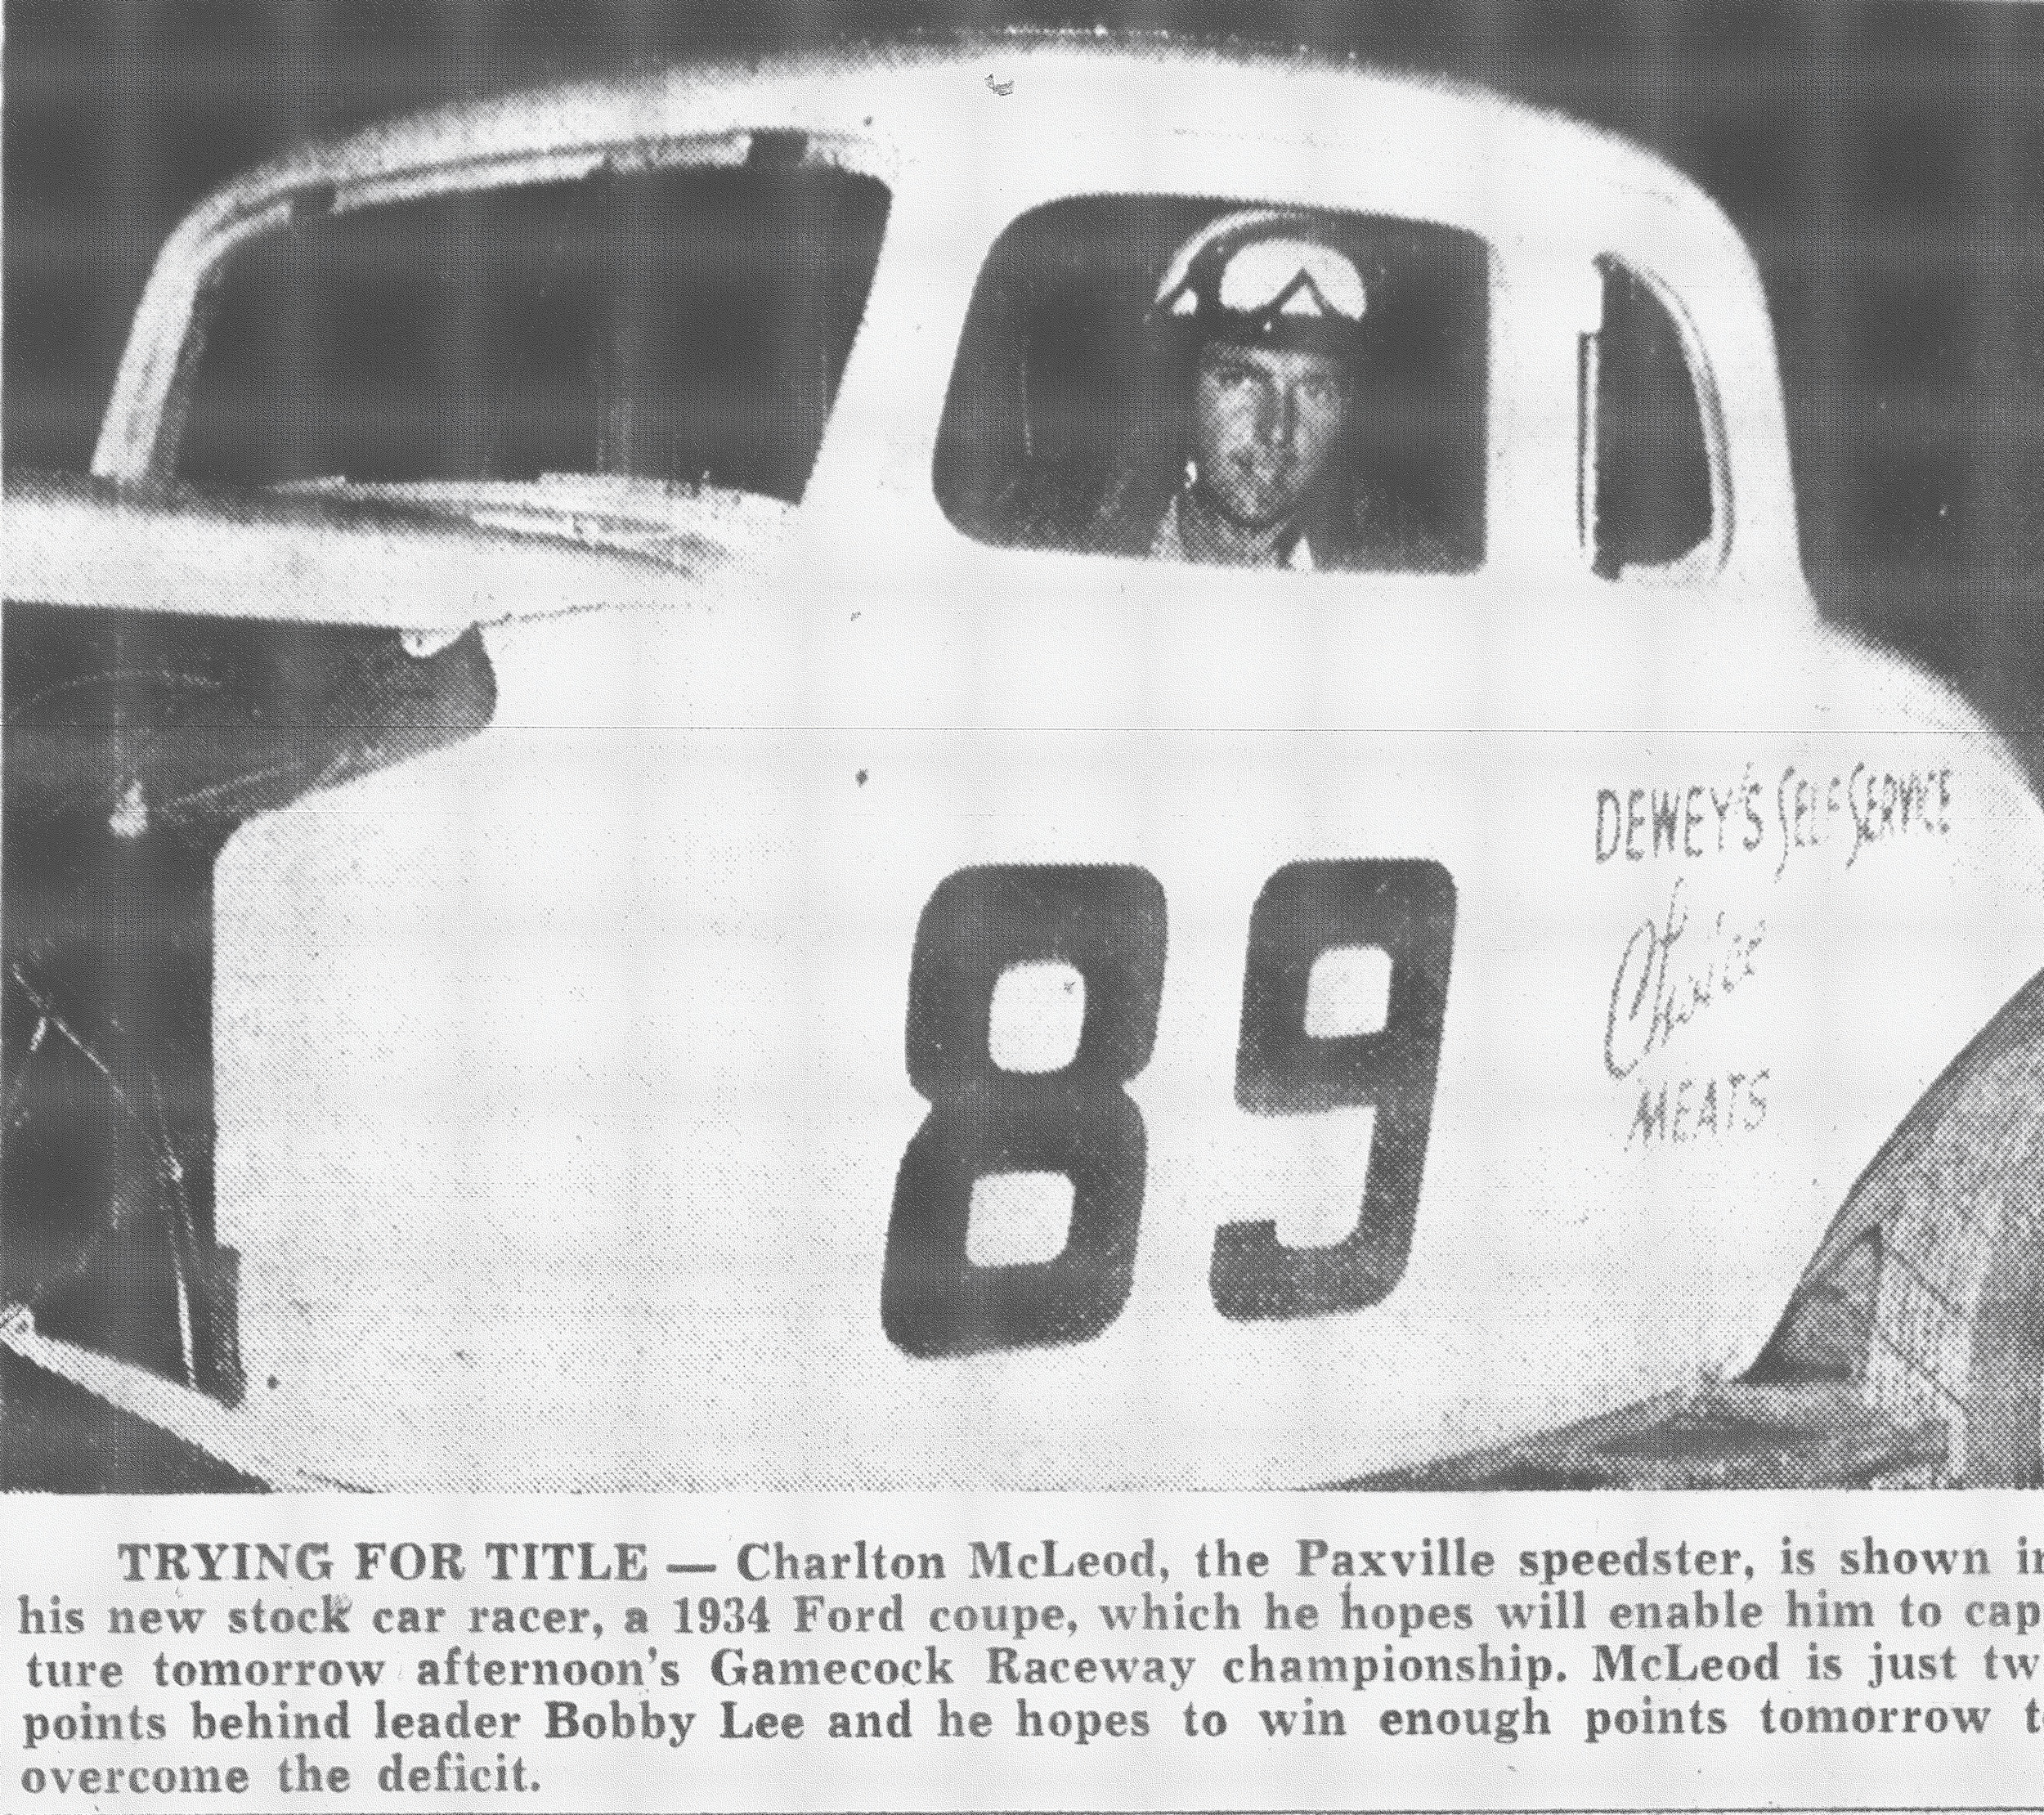 Charlton McLeod, the Paxville speedster, is seen in his new stock car racer, a 1934 Ford coupe, which he hoped would enable him to capture a Gamecock Raceway championship. McLeod was just two points behind leader Bobby Lee and hoped to win enough points to overcome the deficit.